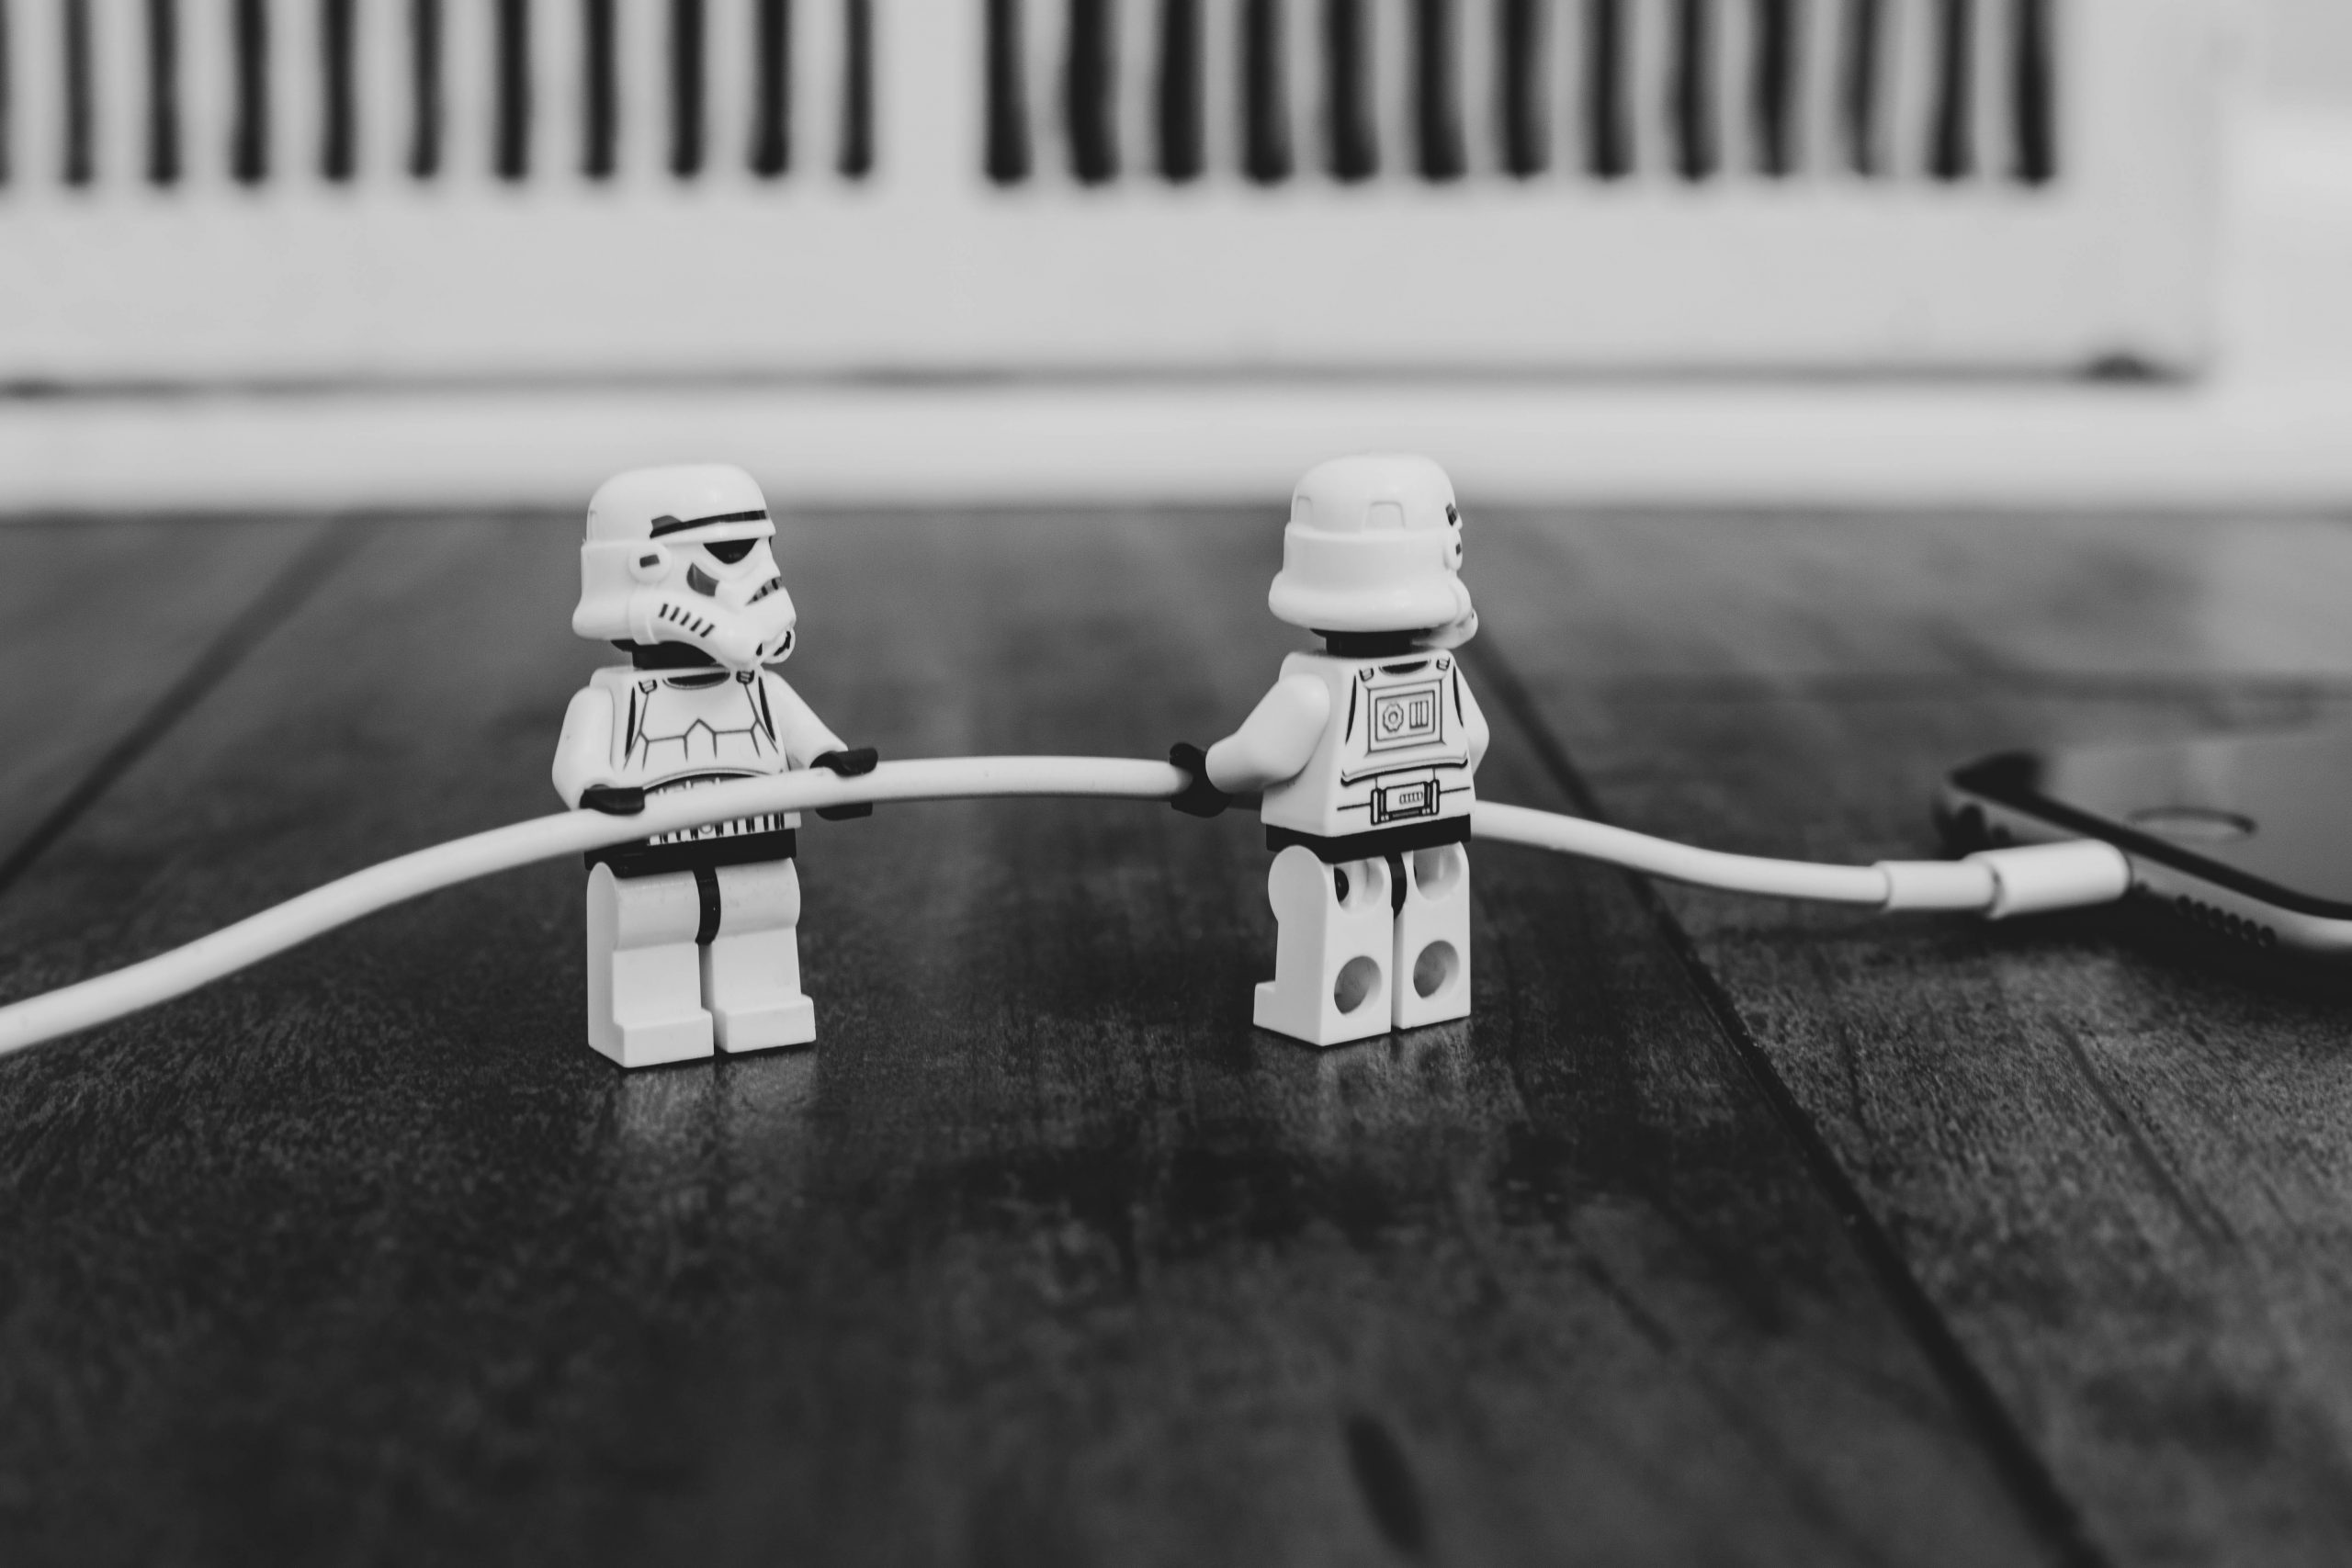 LEGO stormtrooper minifigures plugging in an iPhone cable